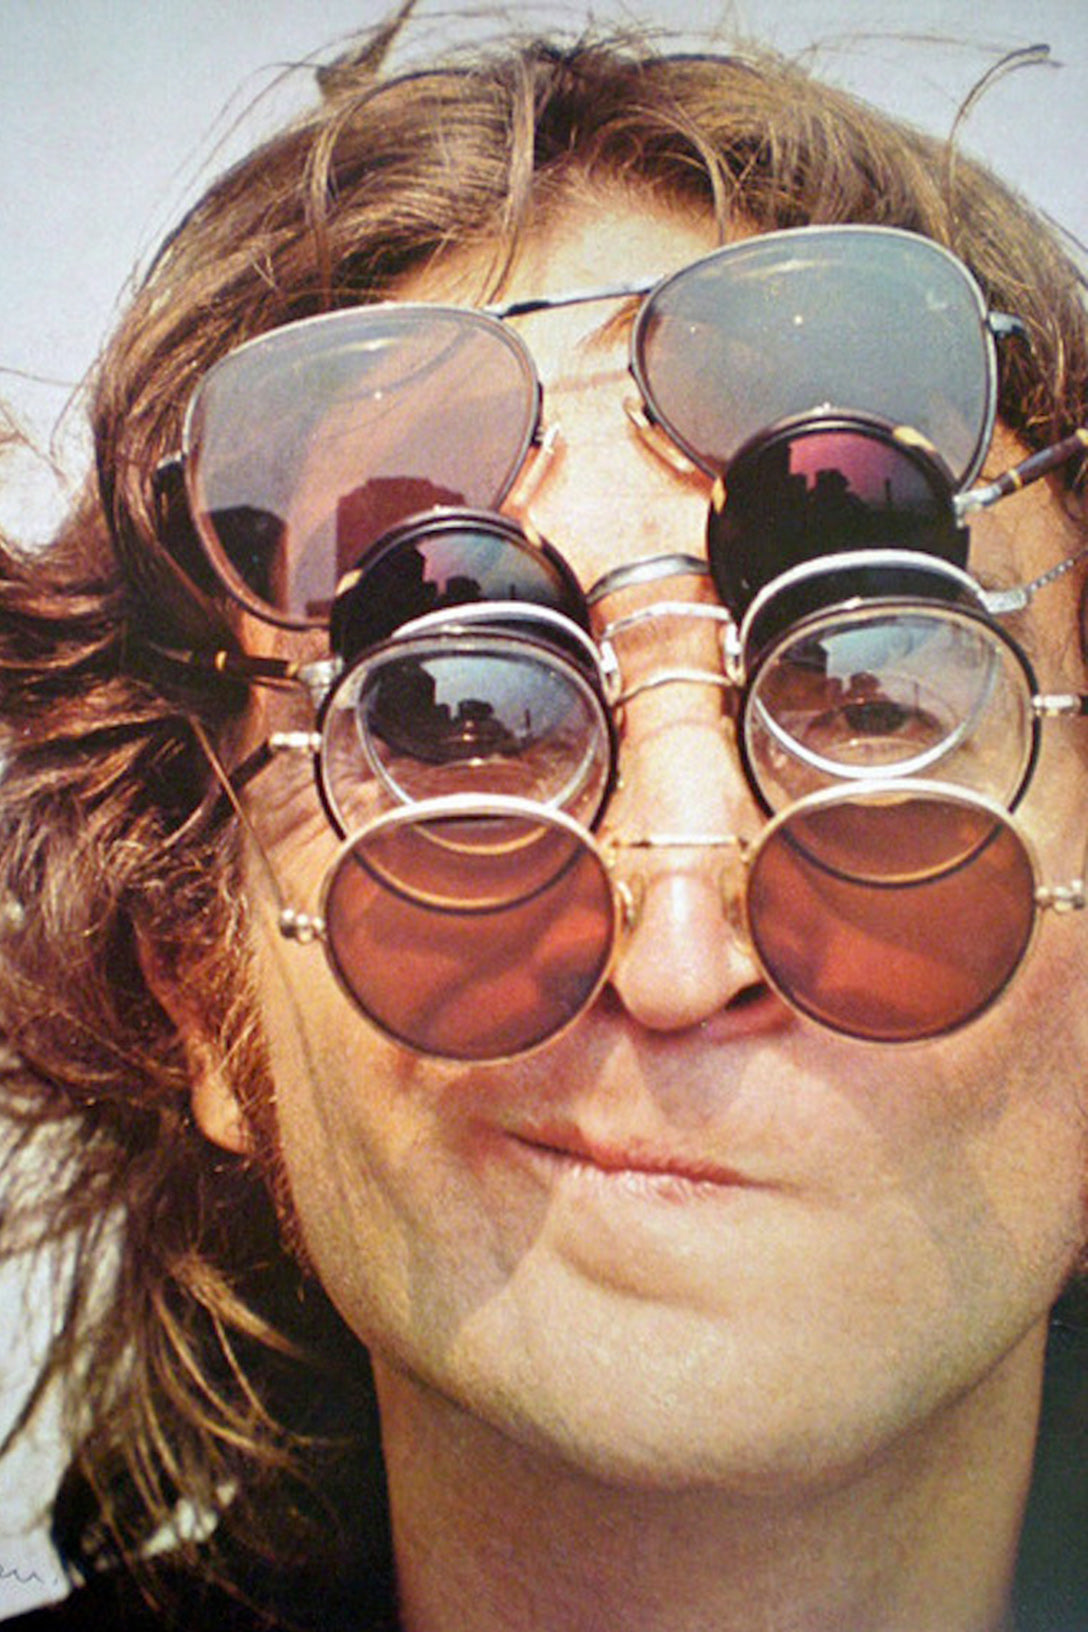 John Lennon wearing round sunglasses similar to GLCO Wilson M Sunglasses